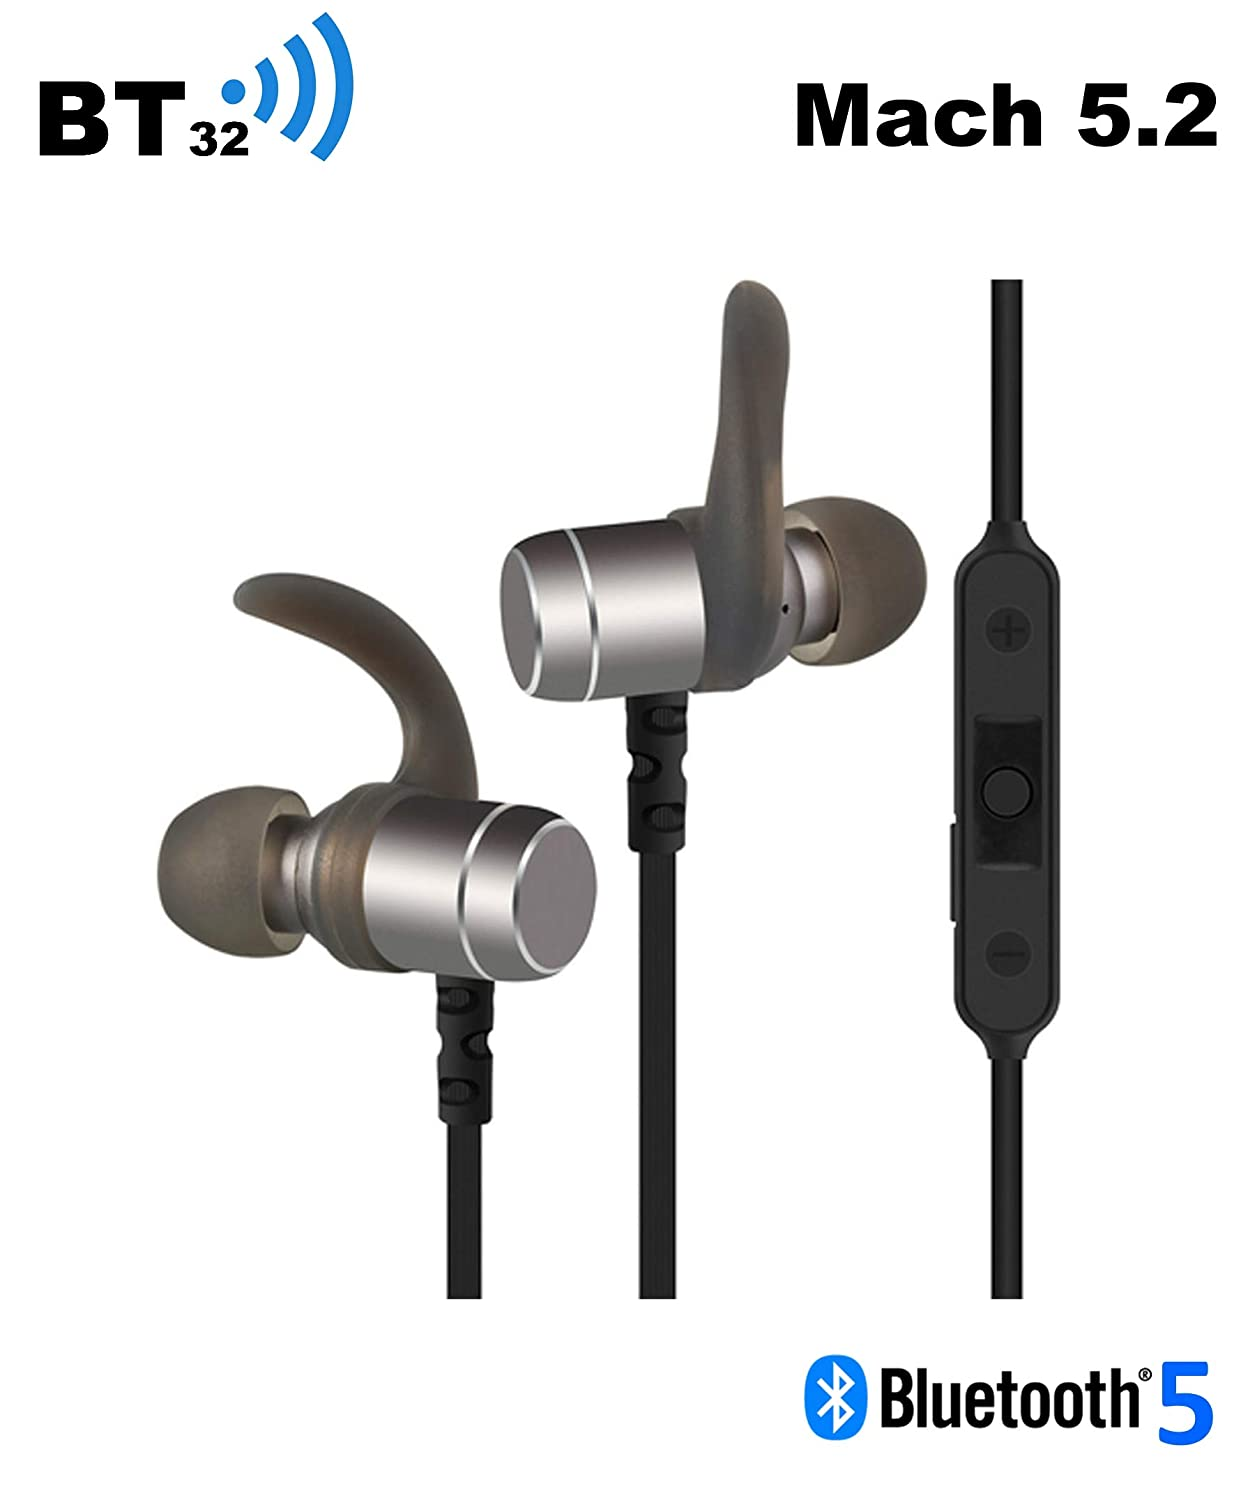 BT32 Mach 5.2 Bluetooth 5.0 Magnetic Wireless Earbuds, Sport in-Ear, Sweatproof with Built-in Charger and Mic, Super Sound Quality, 11 Hrs Playtime, Comfortable, Black